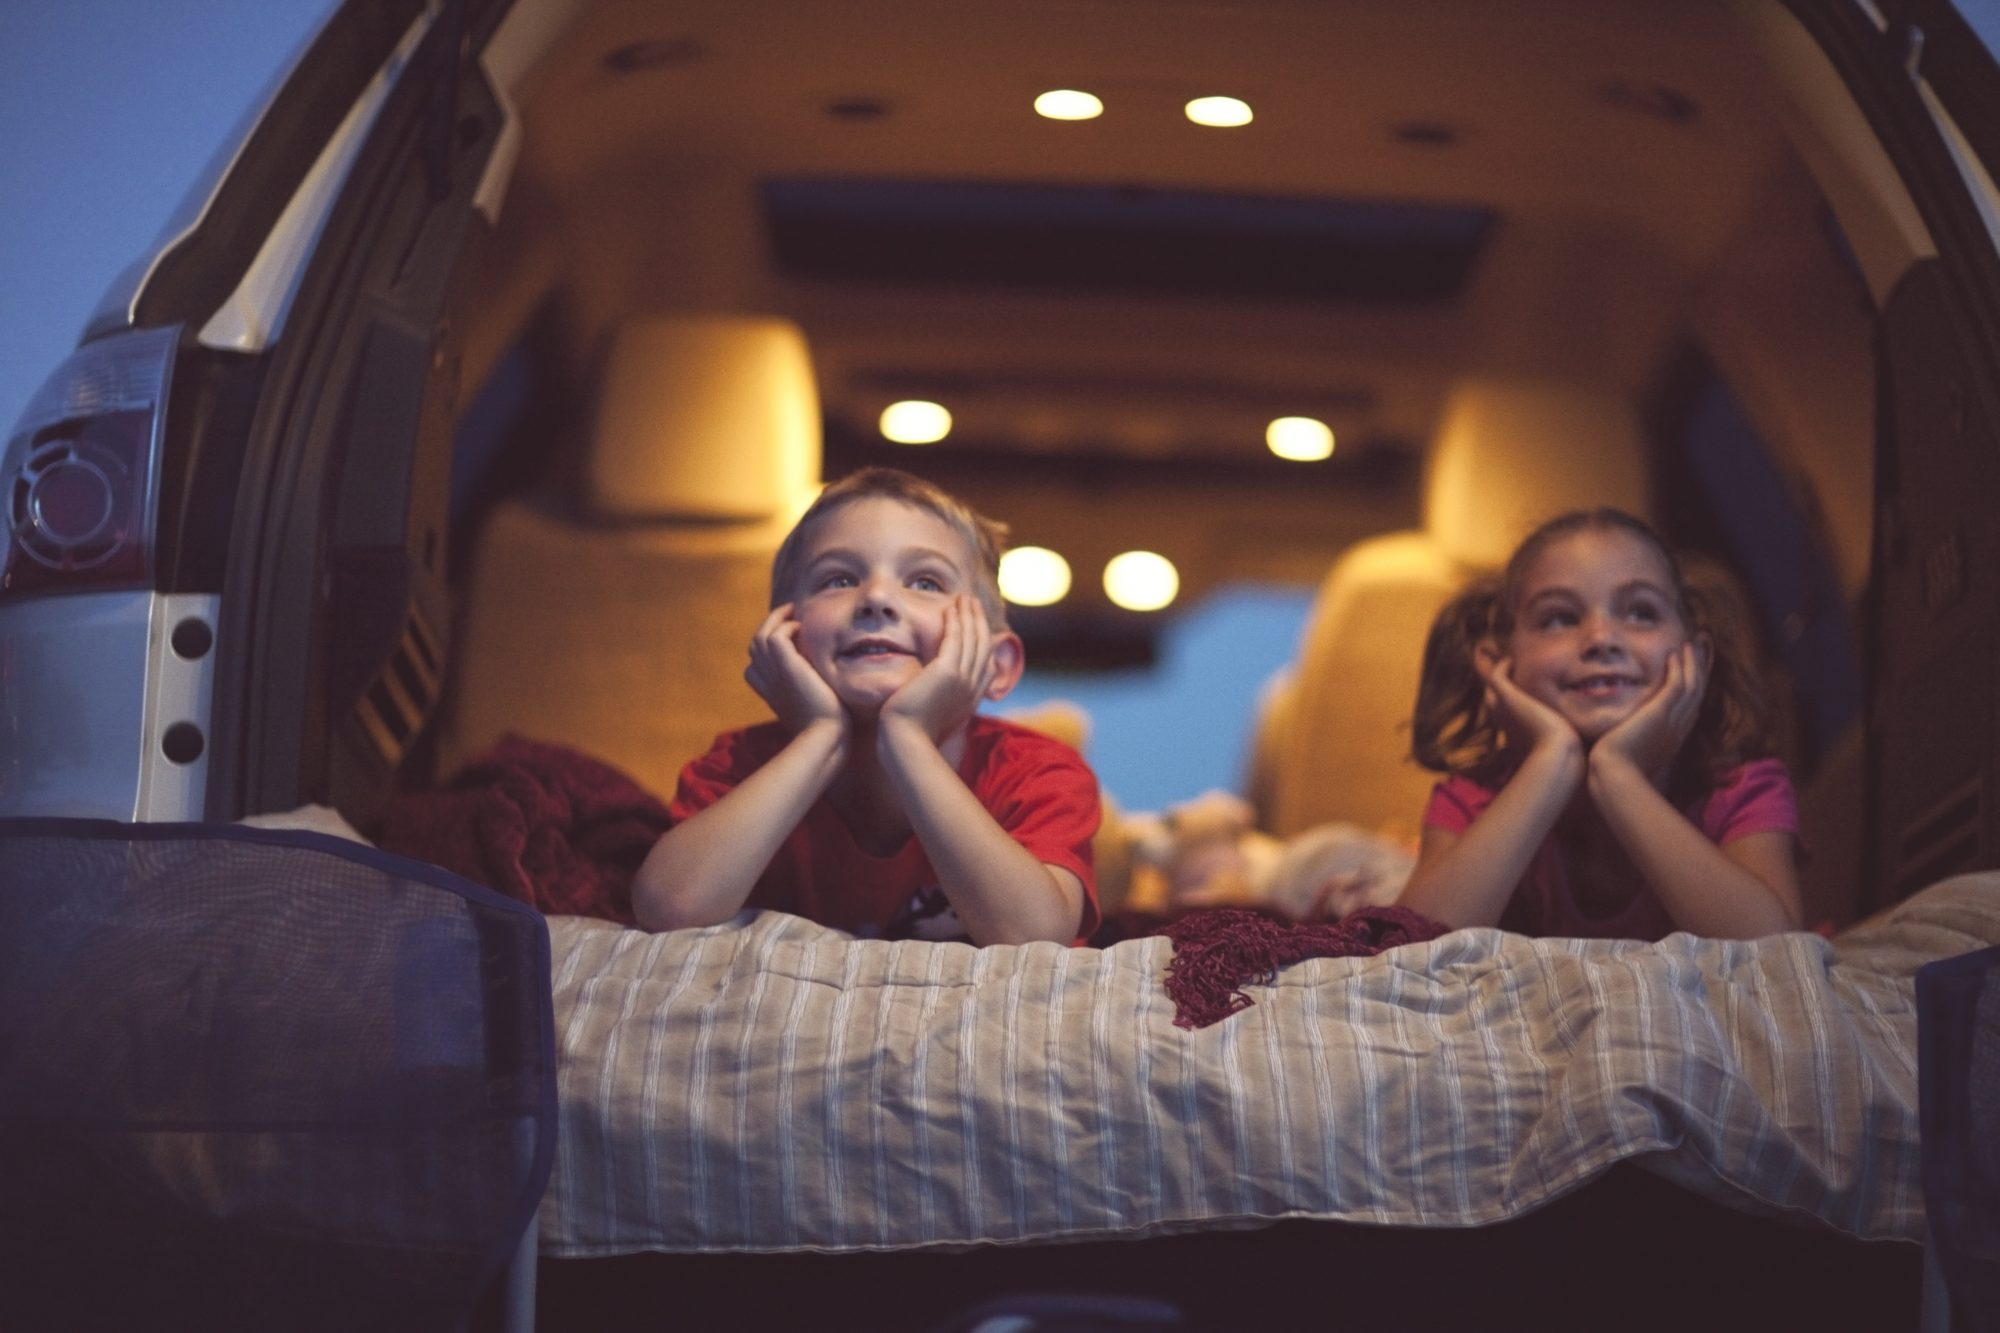 Children at a Drive-in Movie